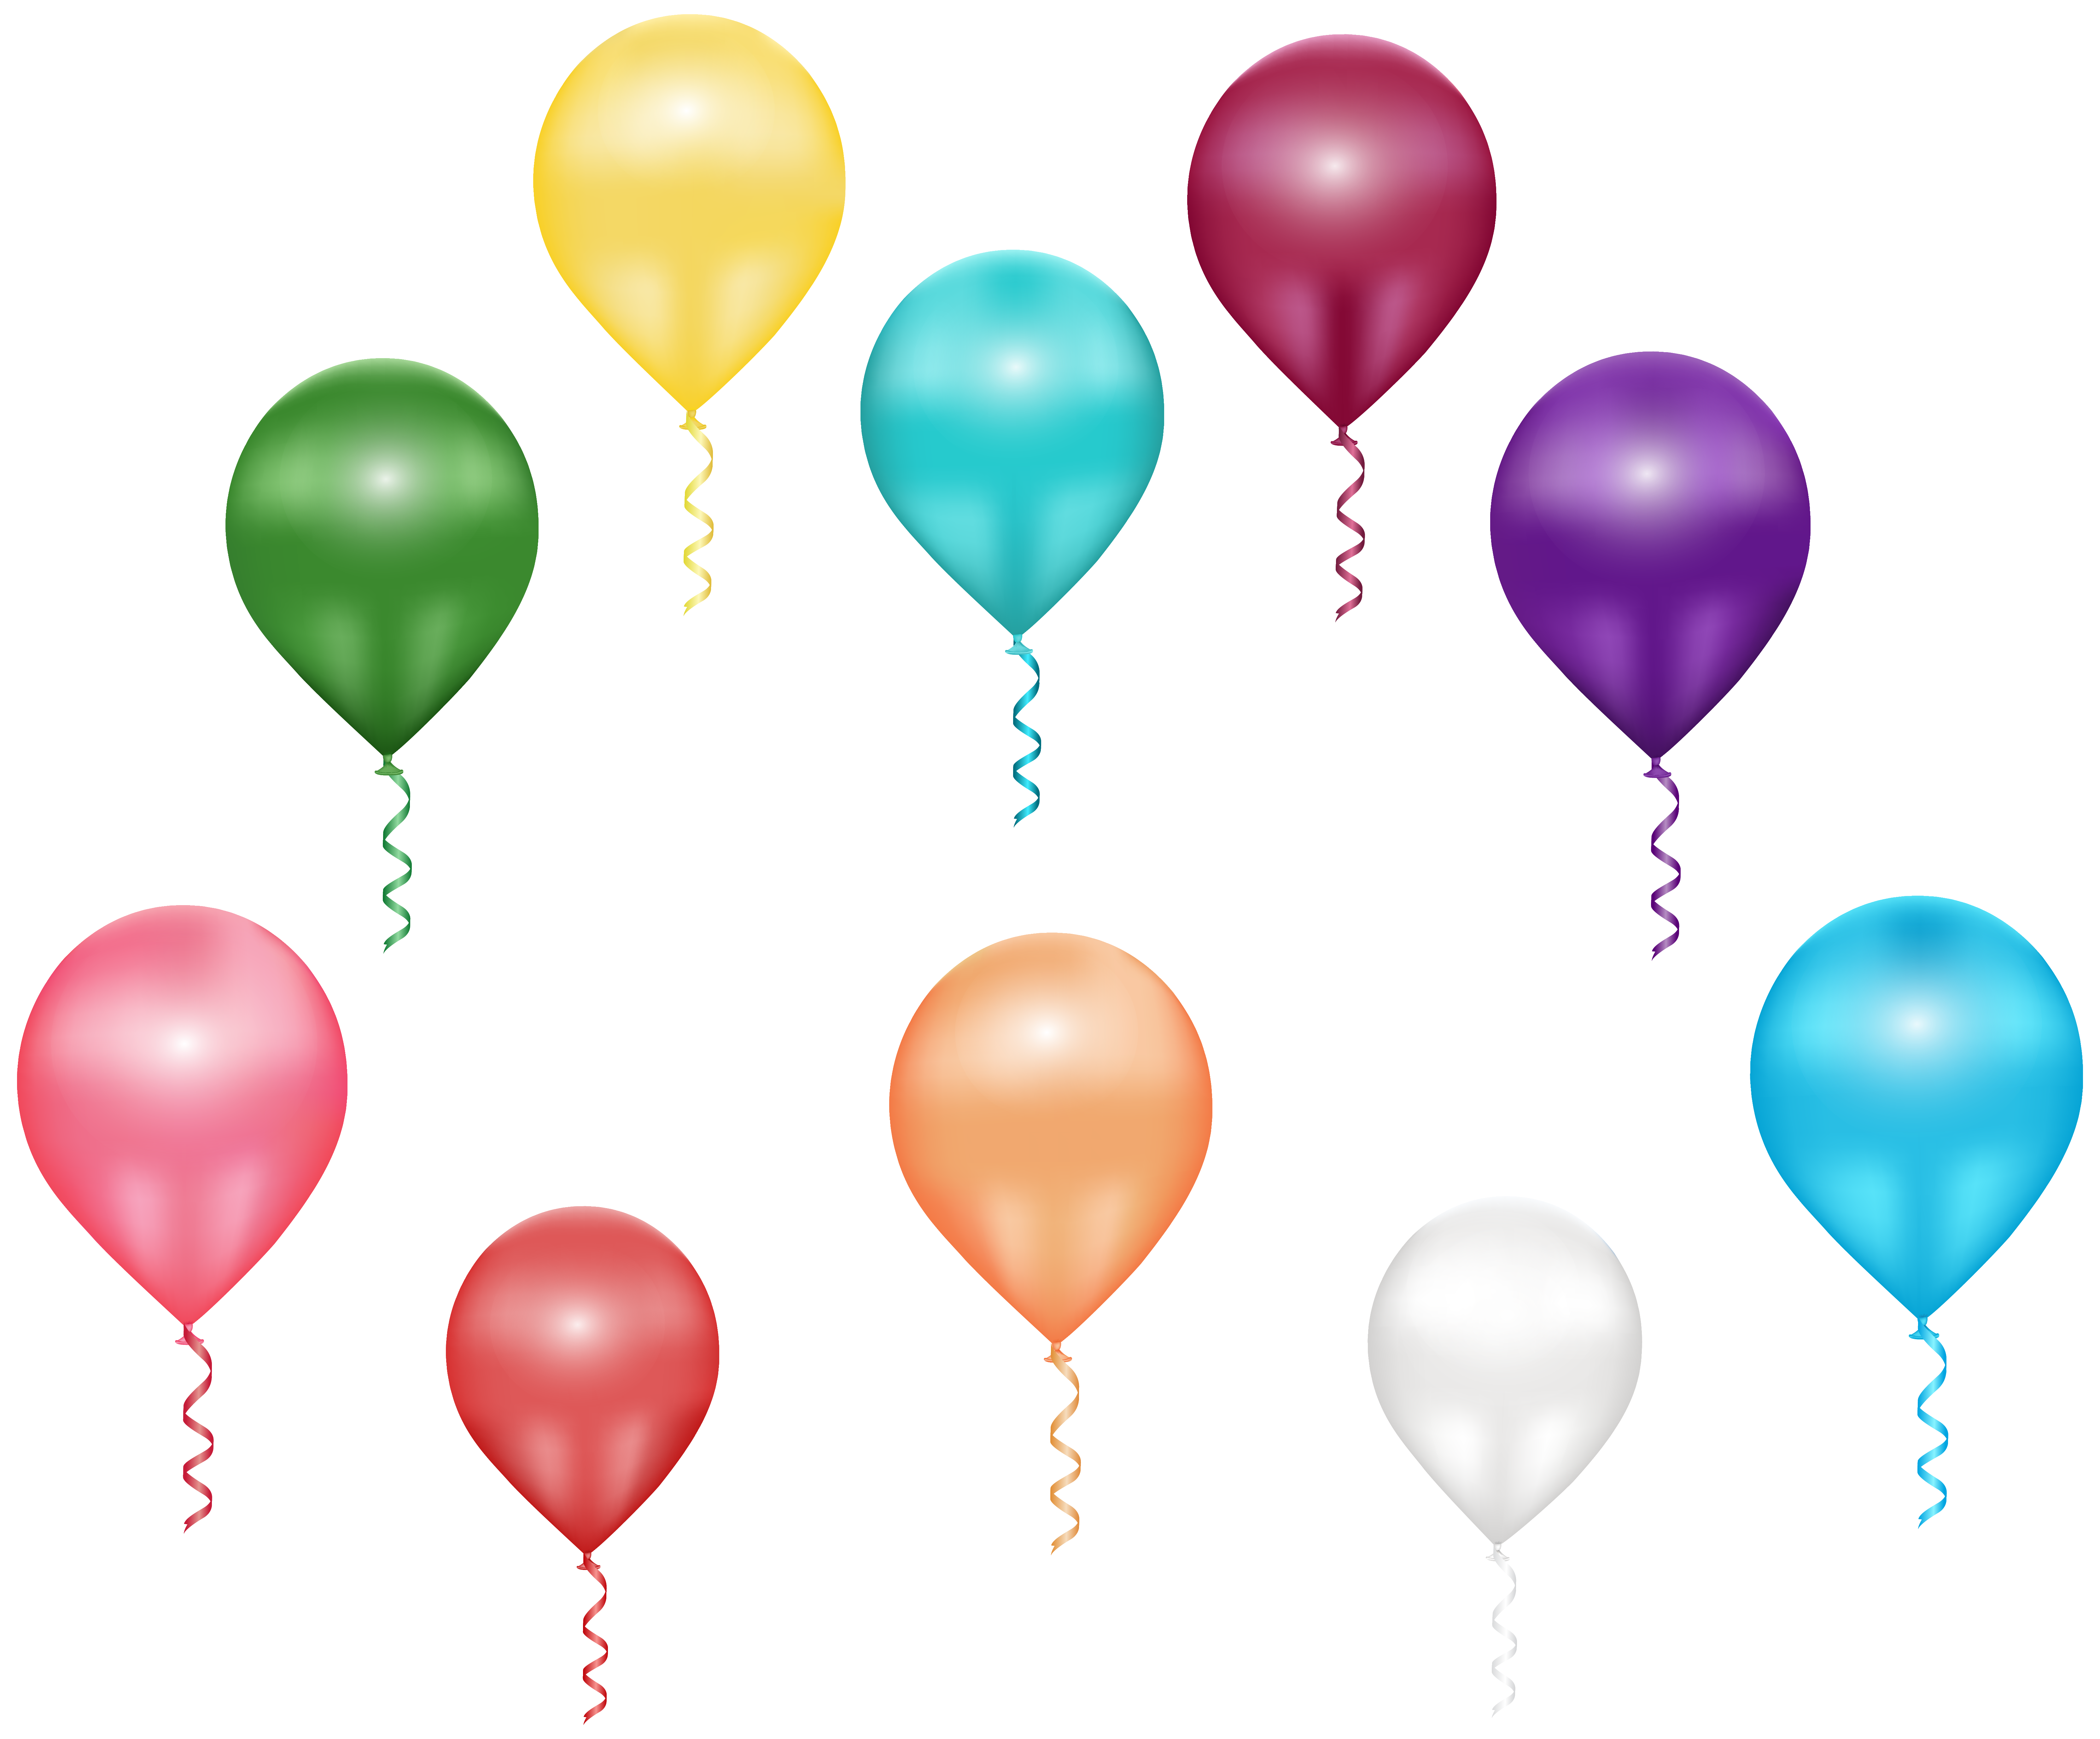 Flying balloons png image. Clipart balloon clip art